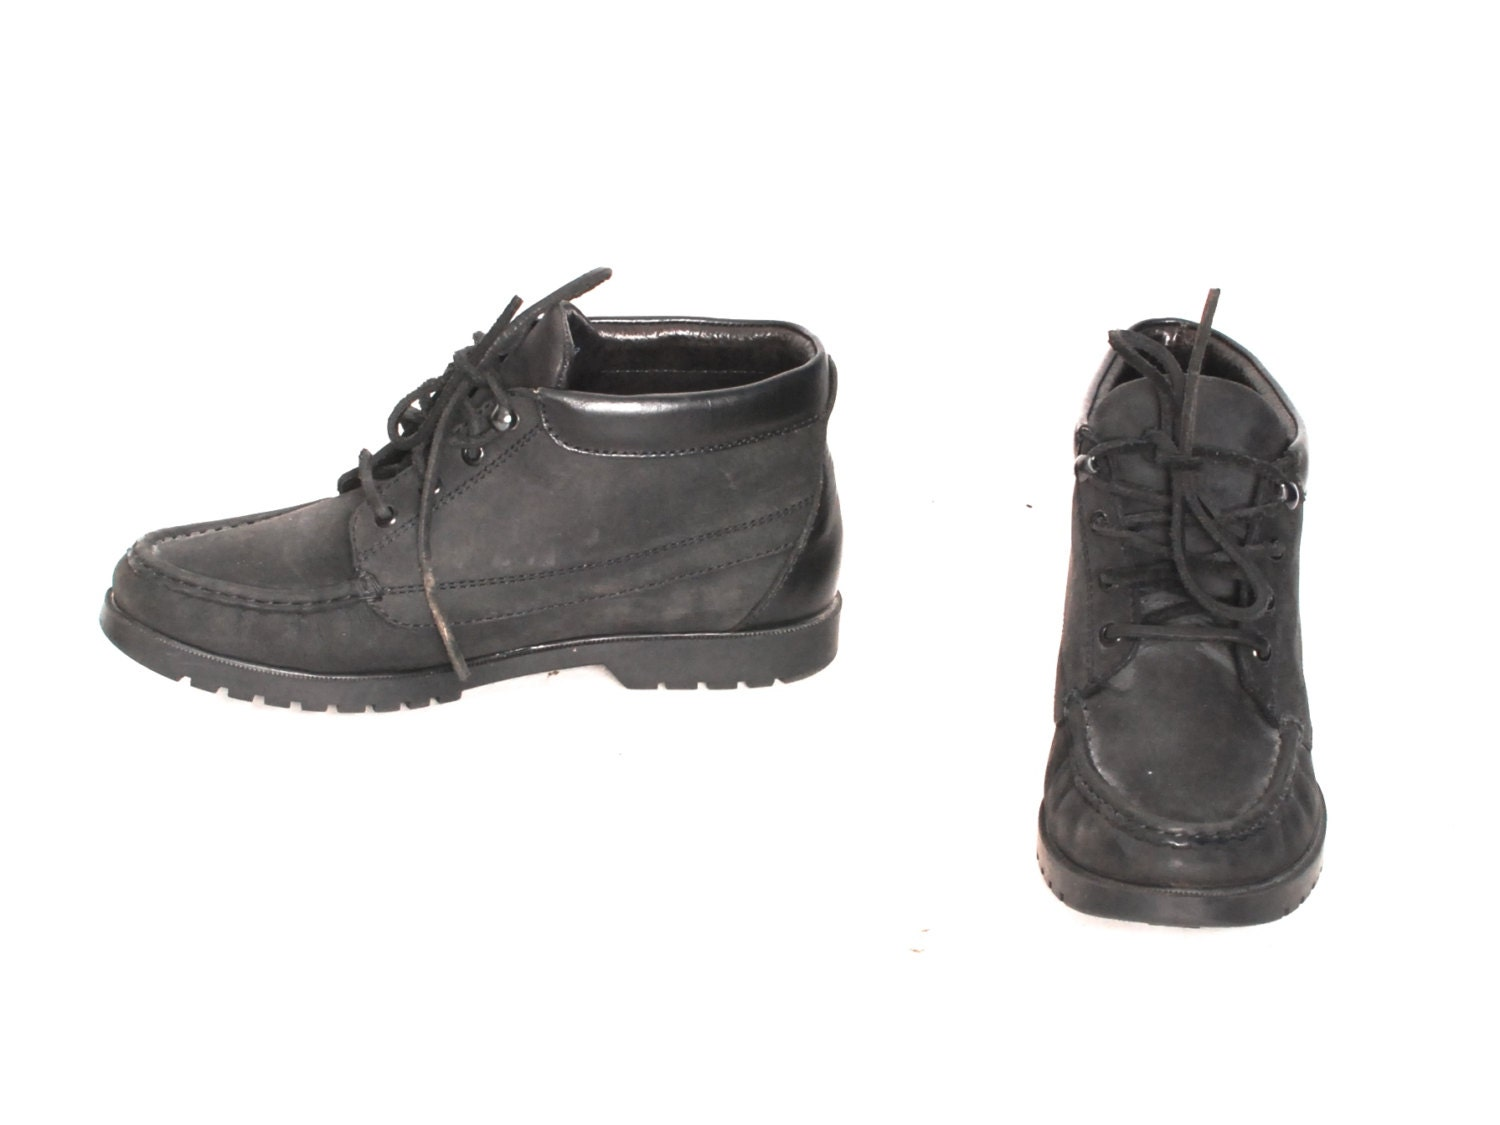 Tamaño 9 GRUNGE negro cuero 80s 90s 90s 90s CHUKKA hiking lace up ankle  botas  7d8035